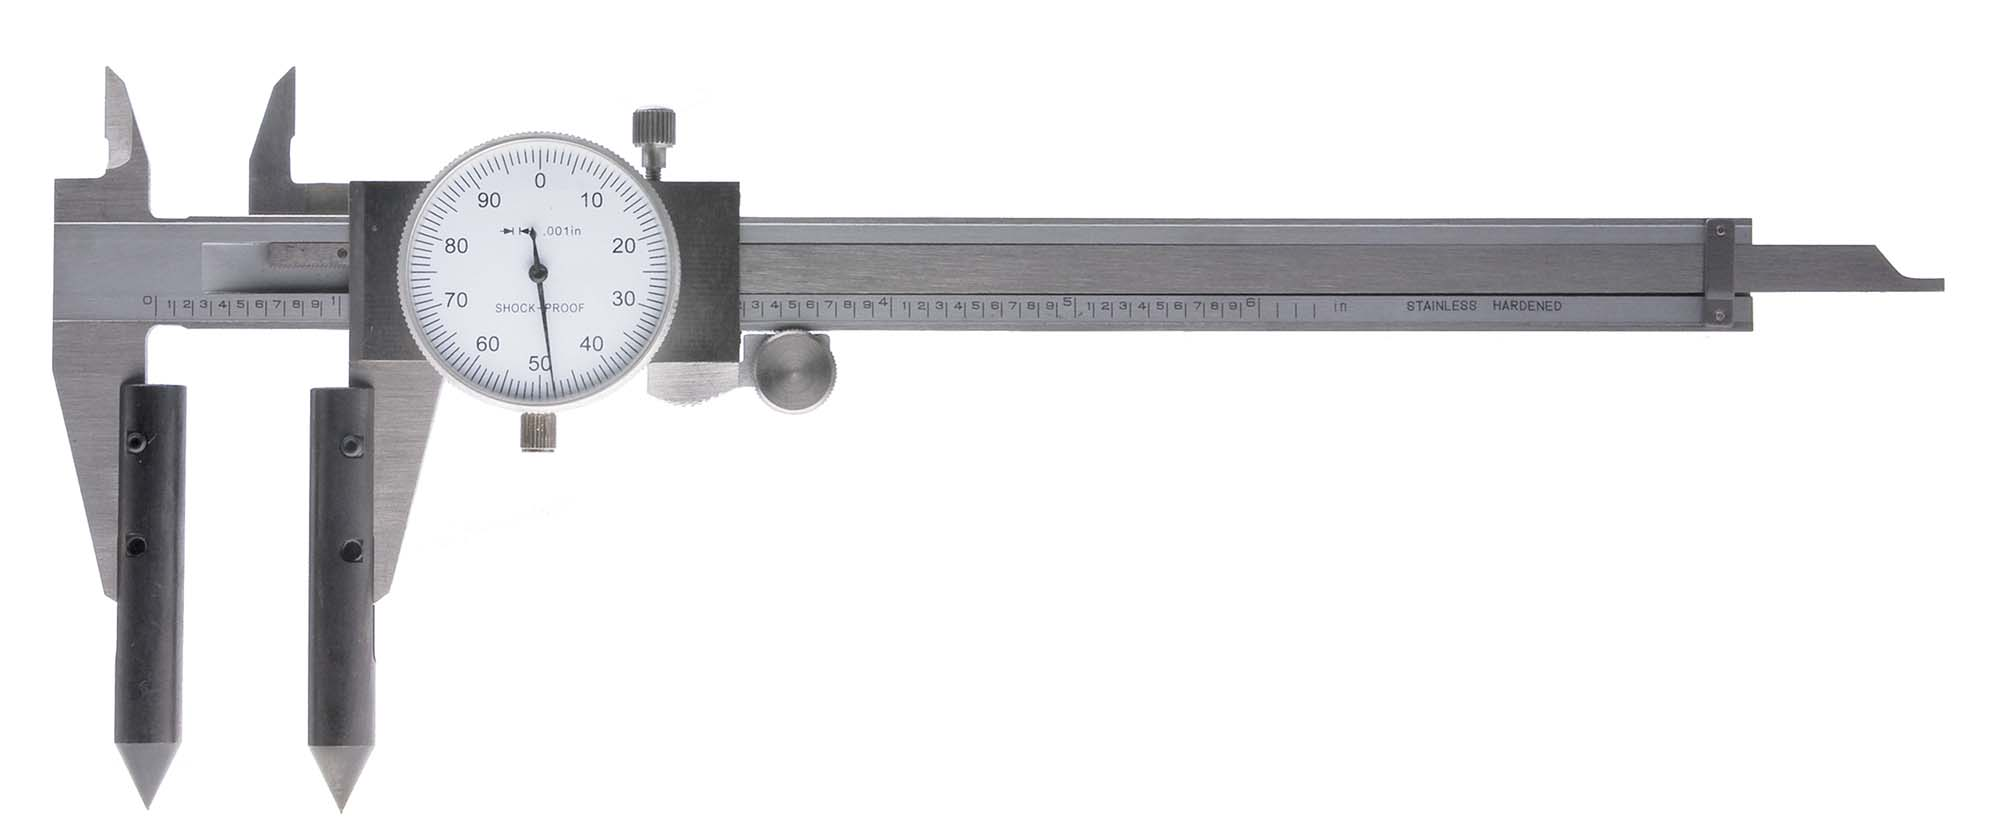 Accurate Mfg Z9010 Centerline Gage for 12 inch Calipers